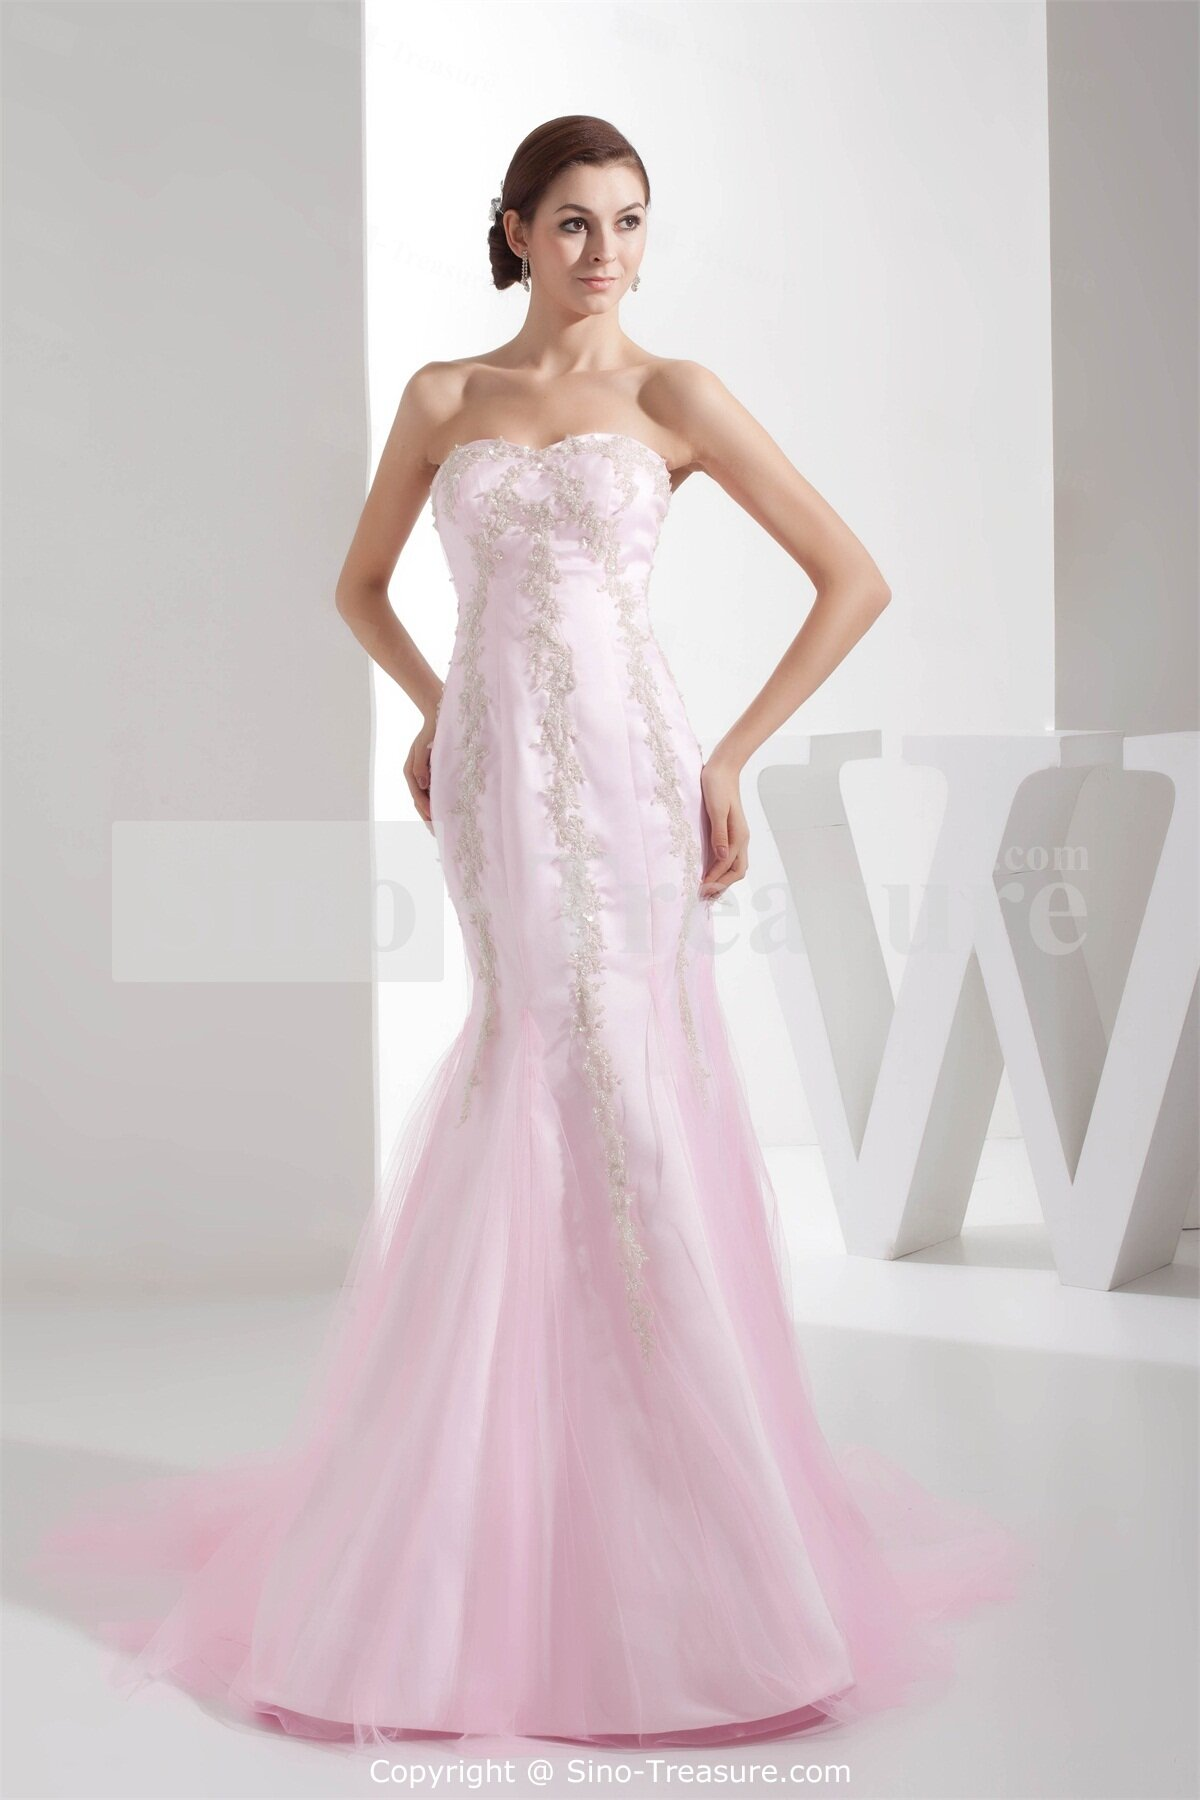 dazzling and elegant light pink wedding dress pictures ideas